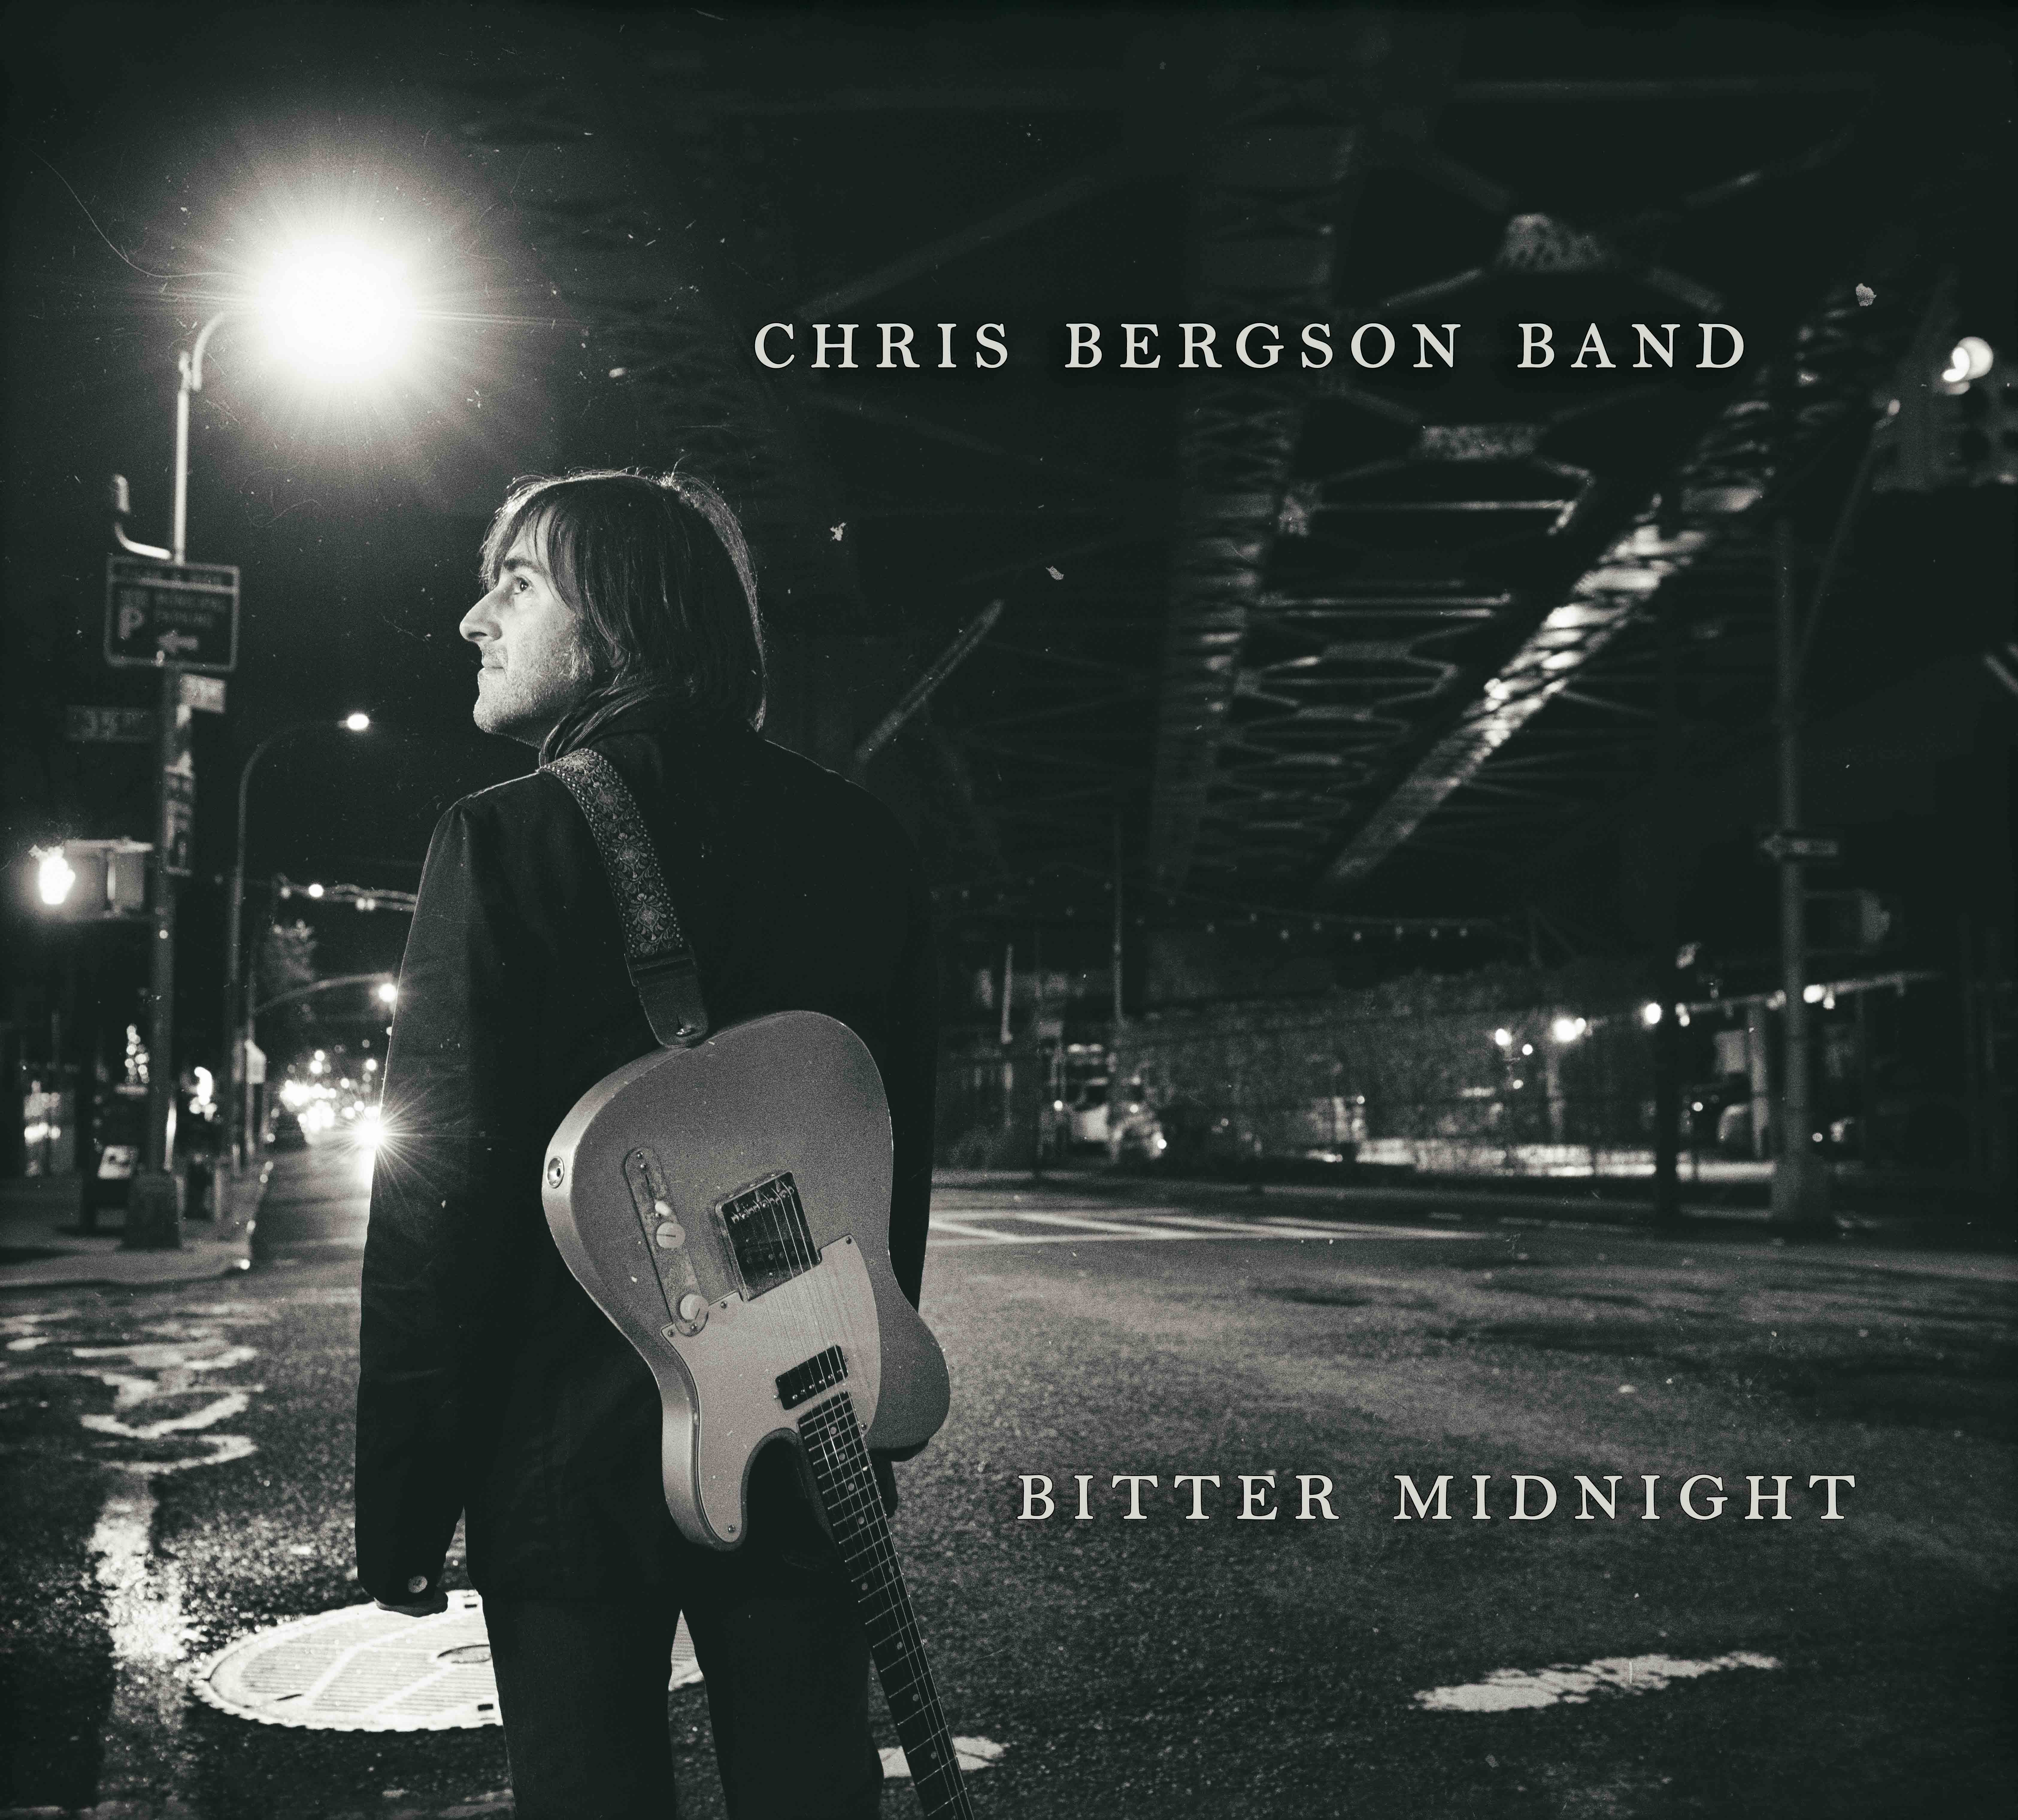 Chris Bergson Band – Bitter Midnight